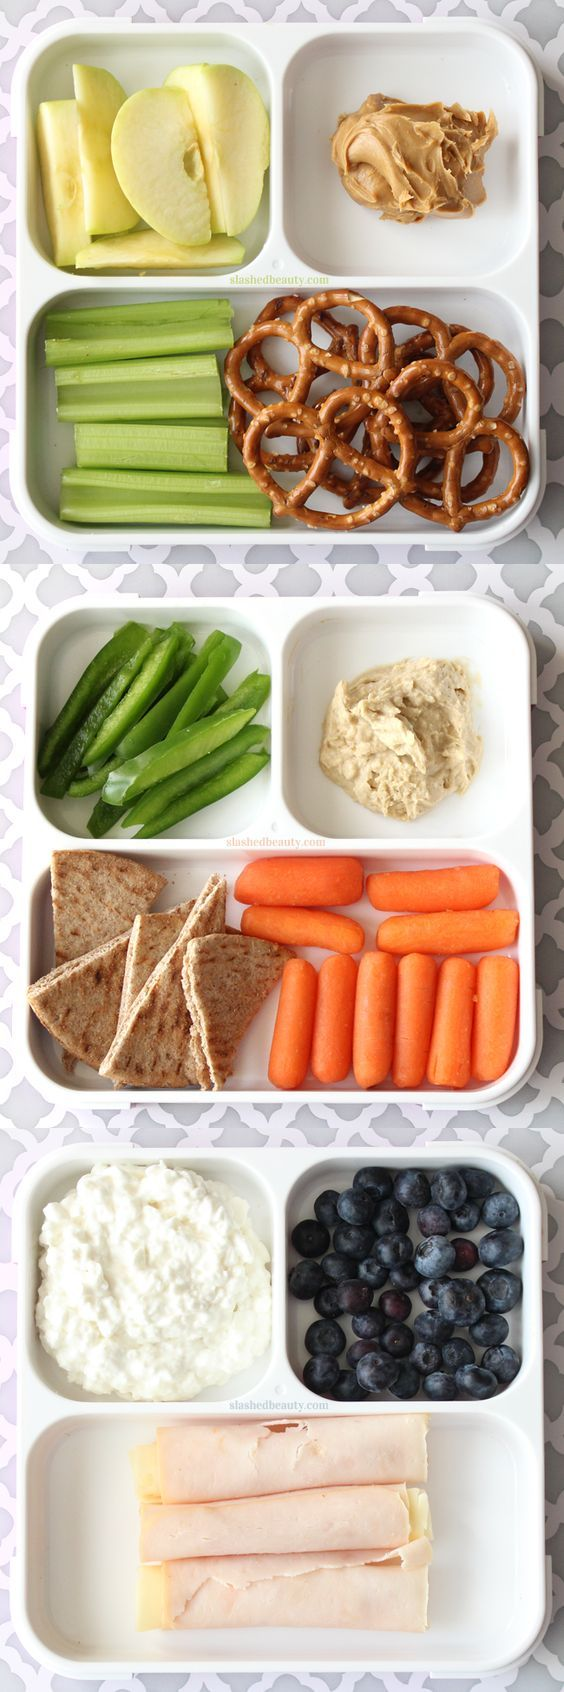 Need some healthy snack inspiration for work or school? Here are three snack pack ideas that will keep you full and on track with your fitness goals!   Slashed Beauty